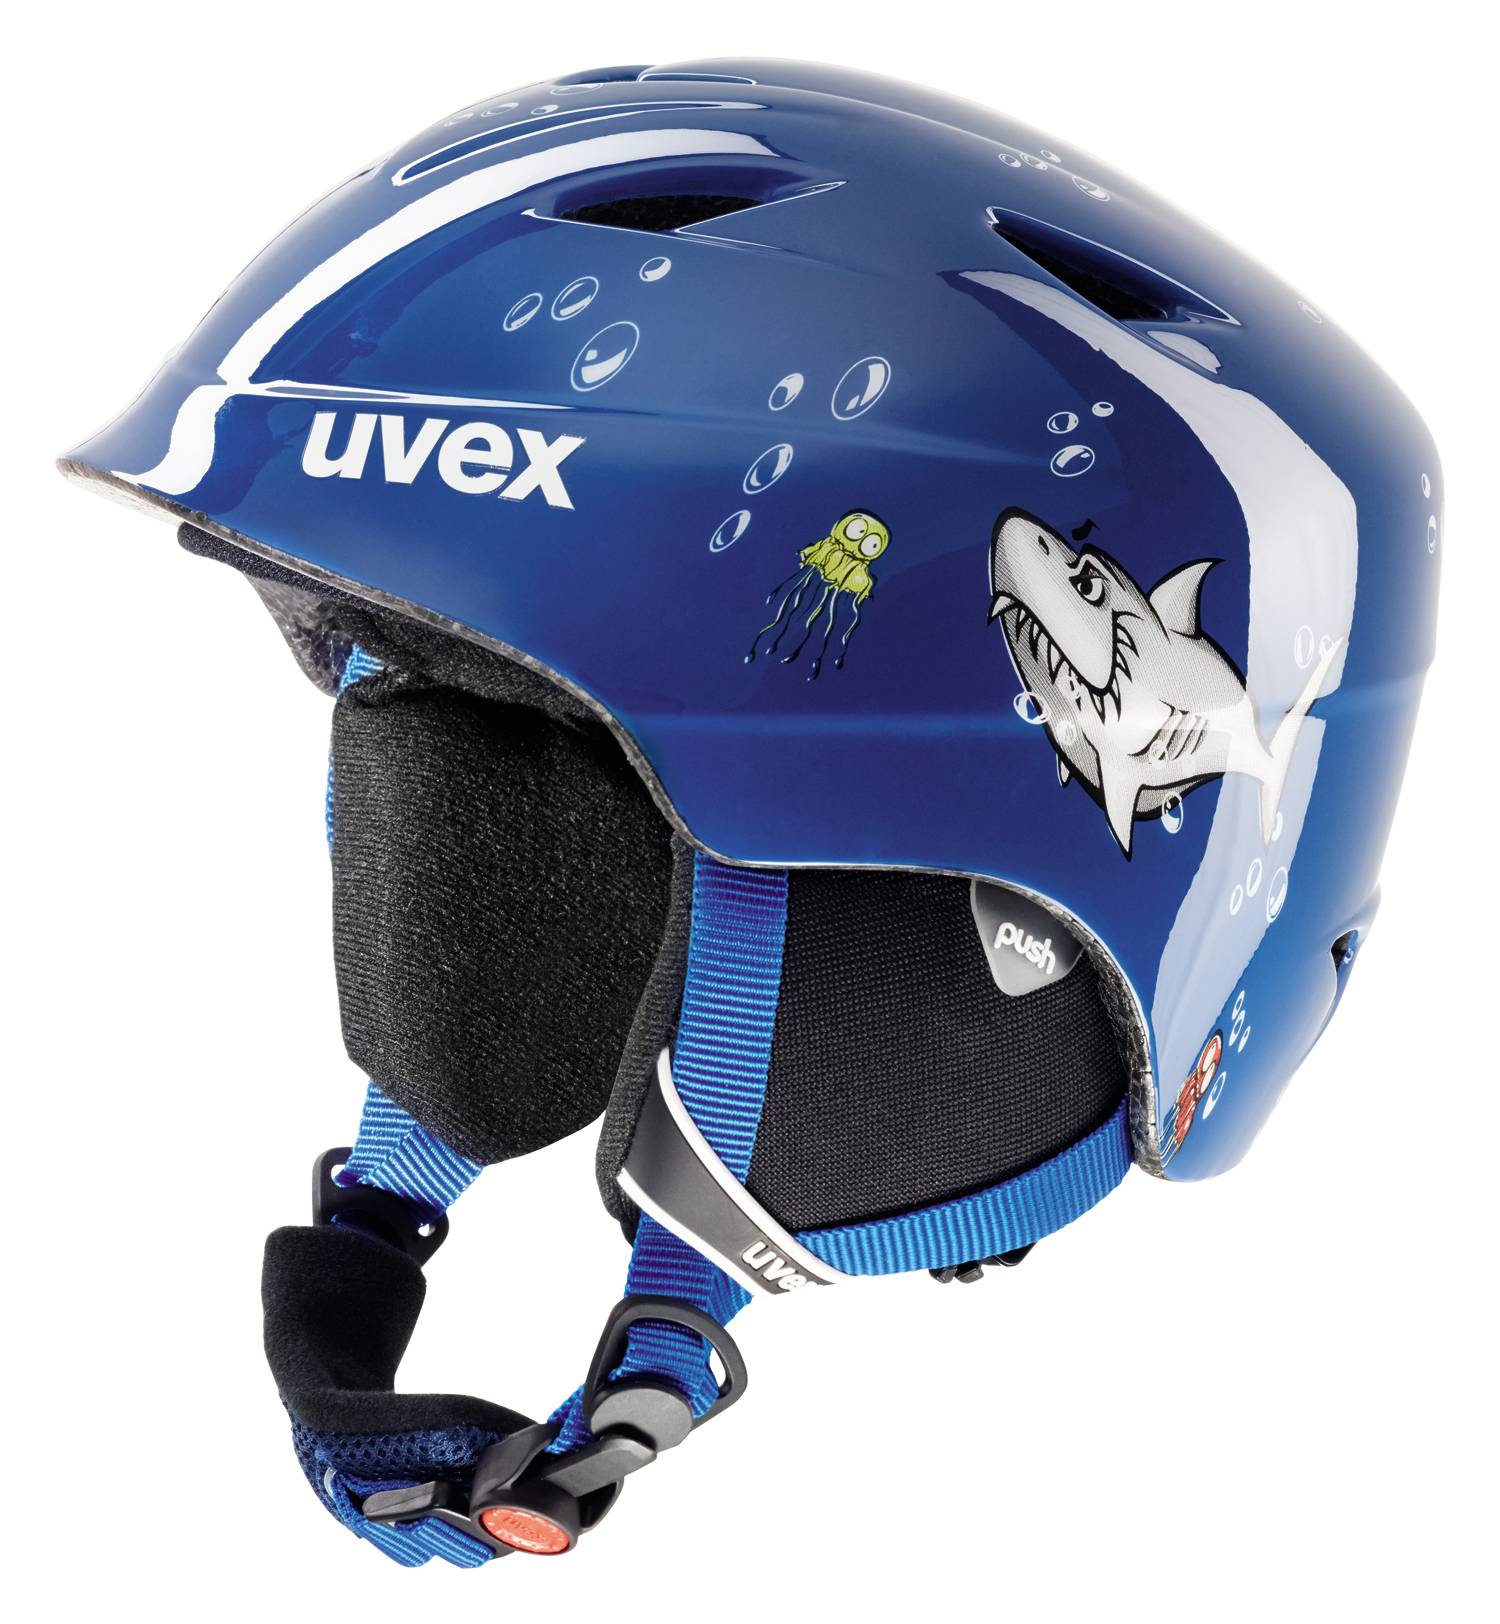 UVEX AIRWING 2, blue shark S566132470 48-52 cm